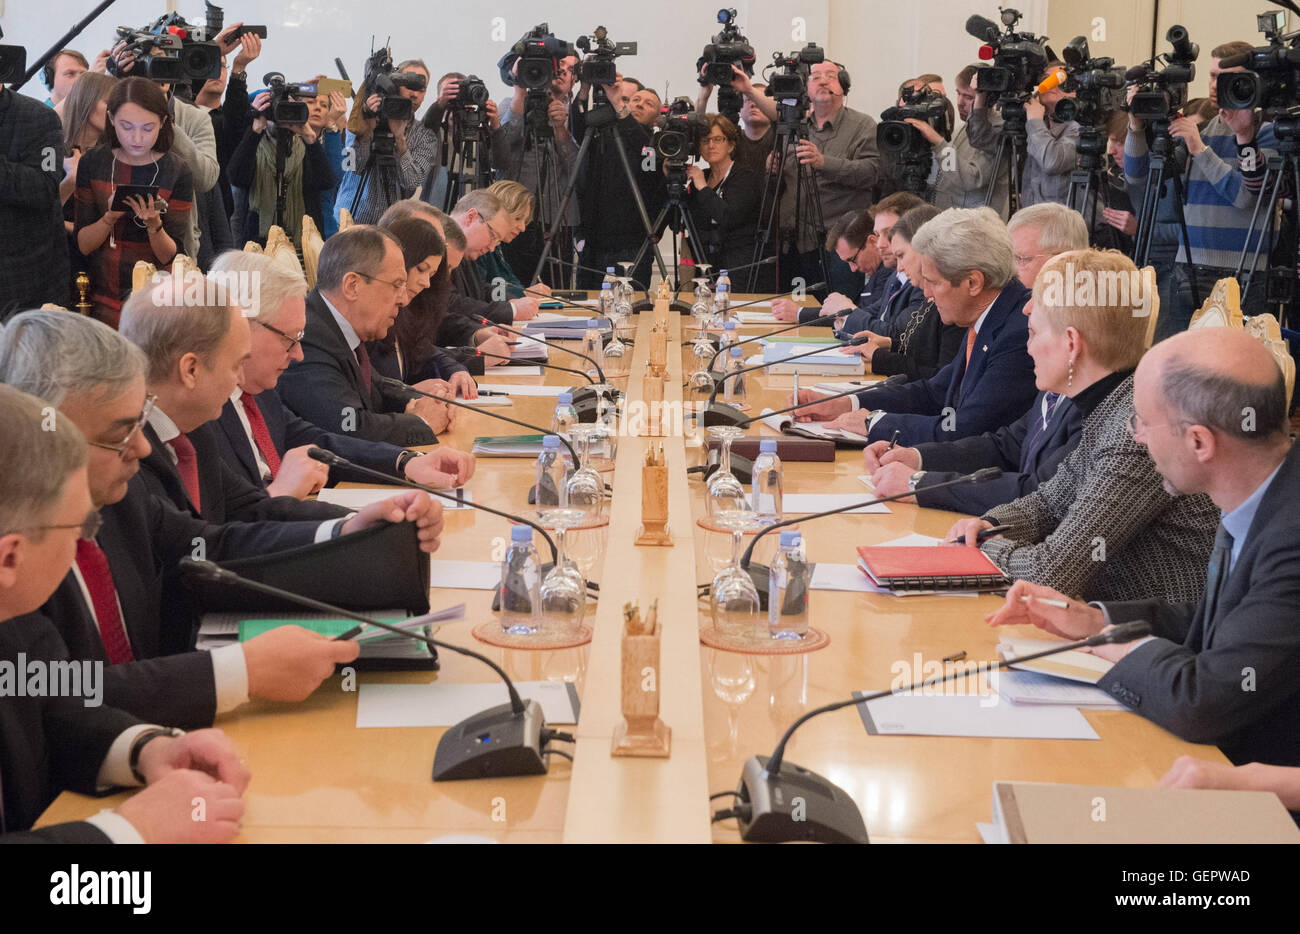 Secretary Kerry Meets With Russian Foreign Minister Lavrov in Moscow - Stock Image